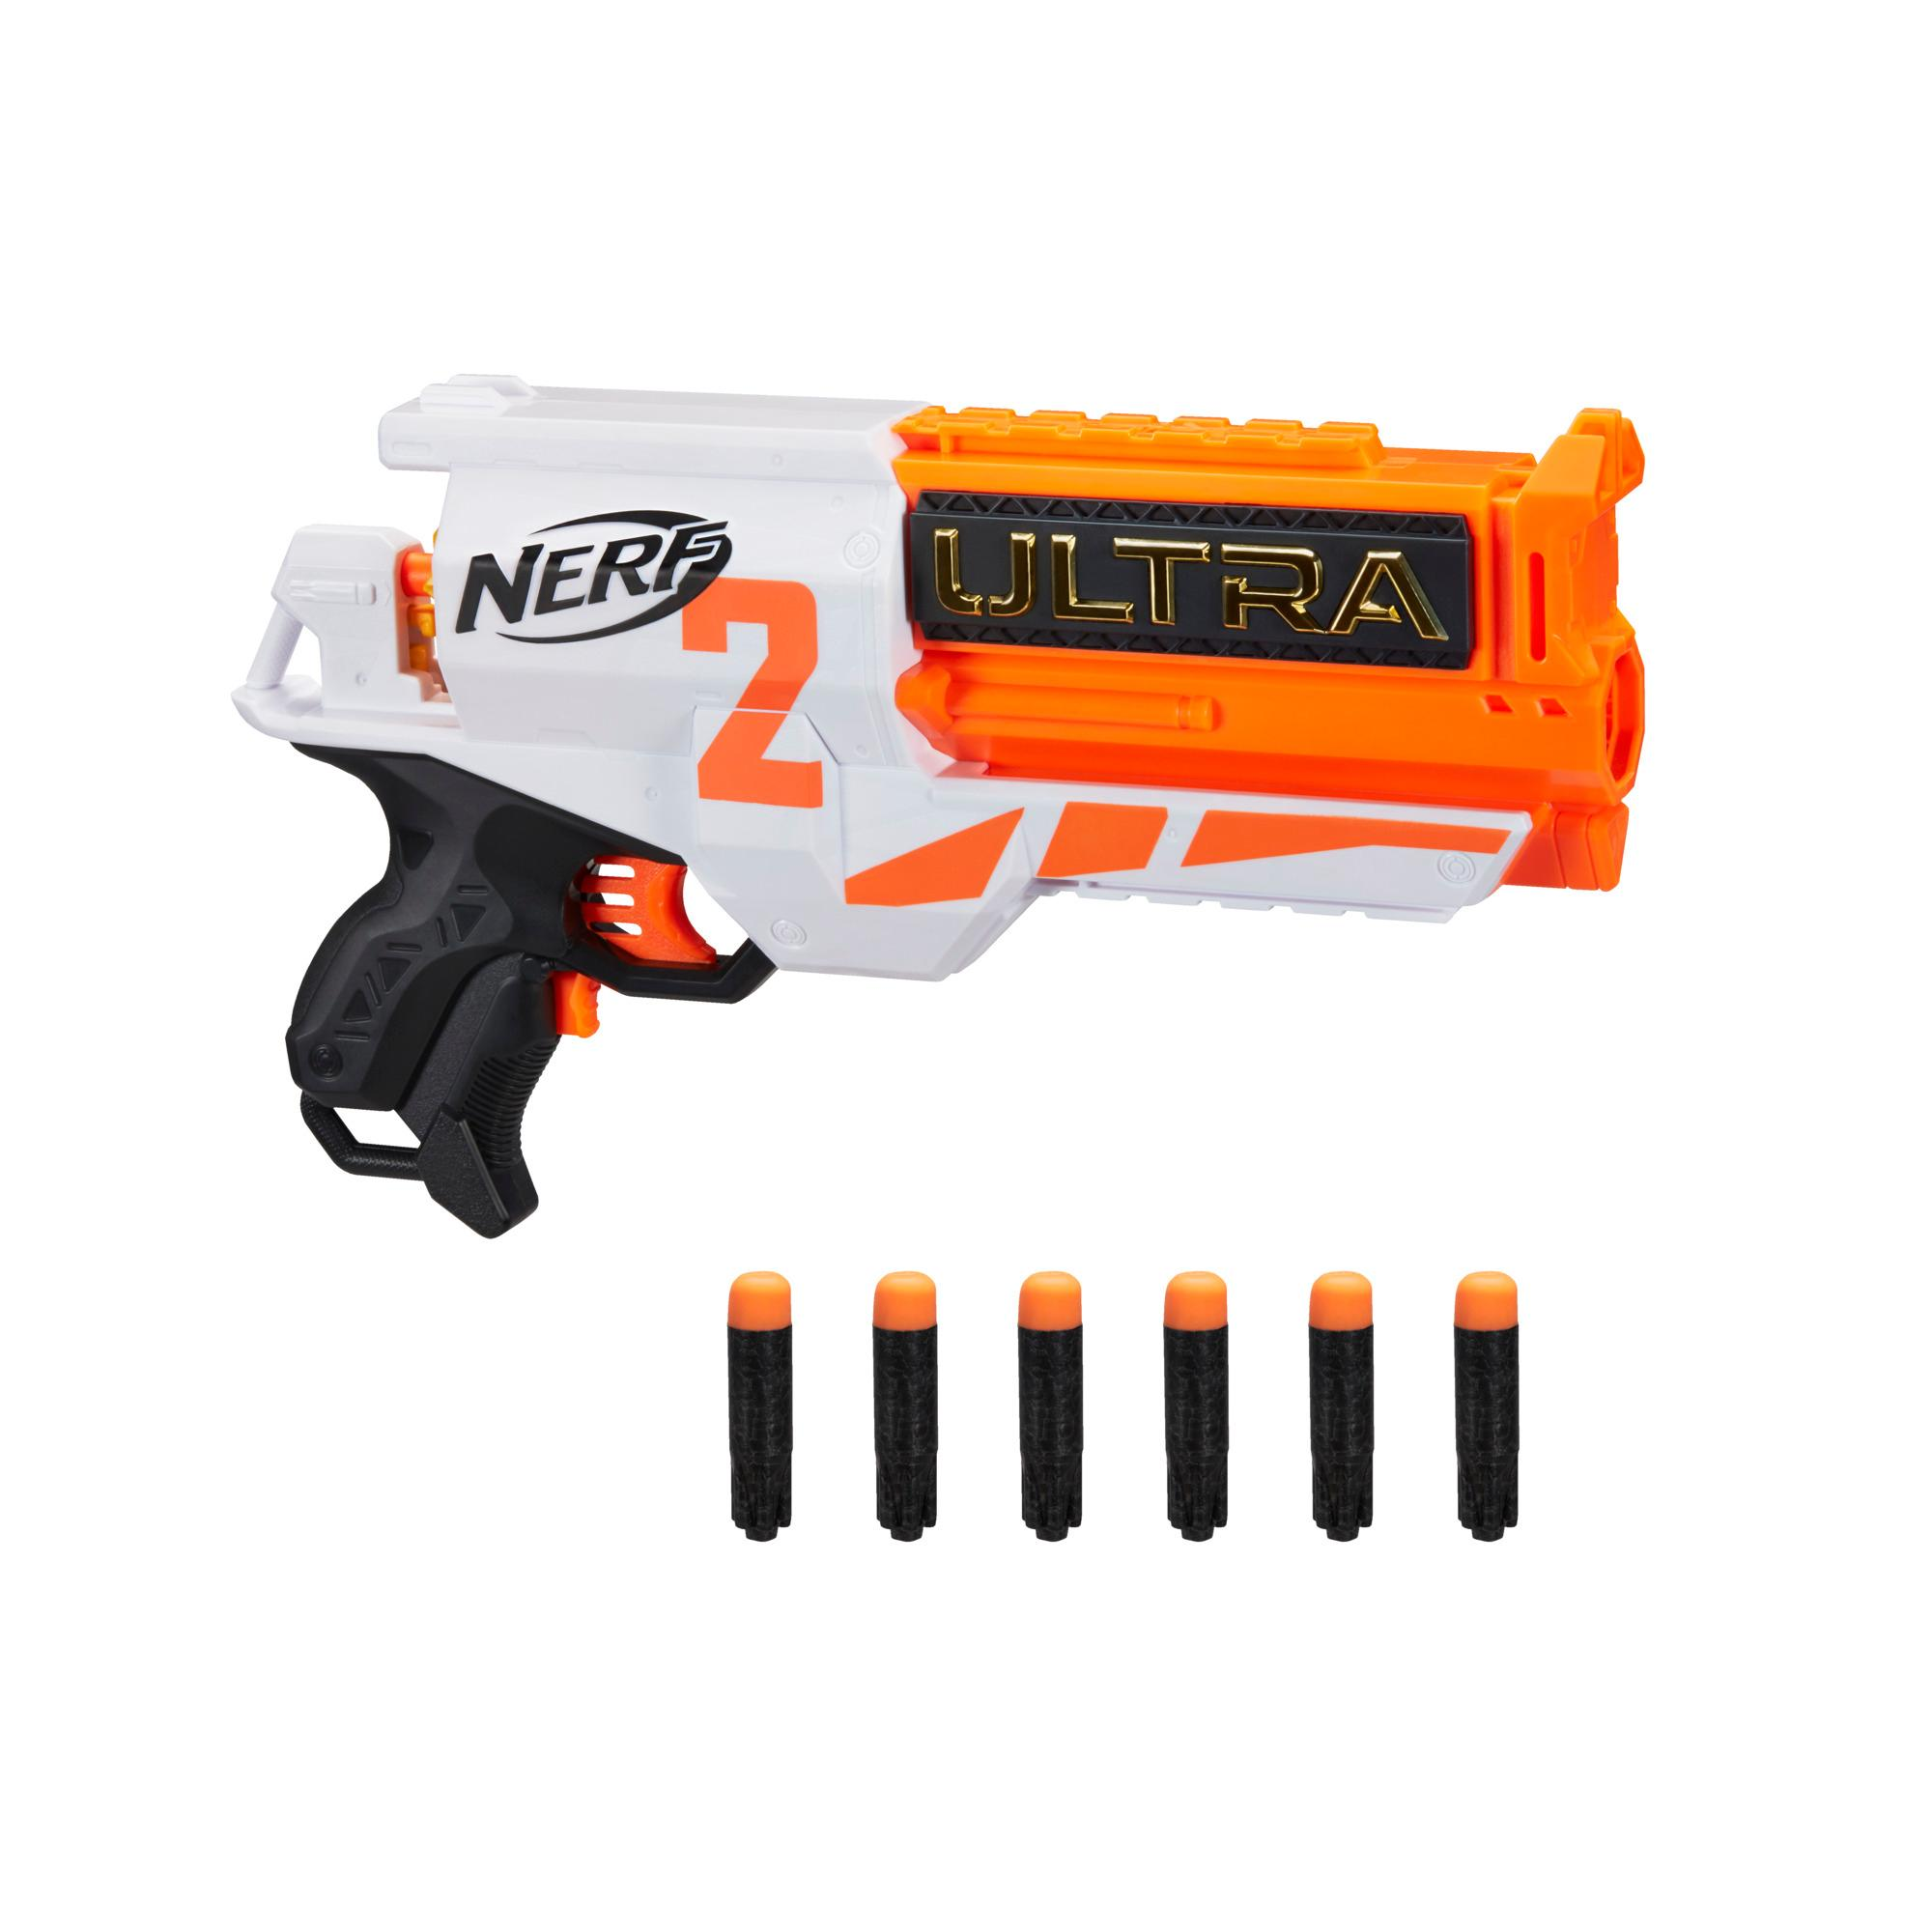 Nerf - Ultra Two Blaster